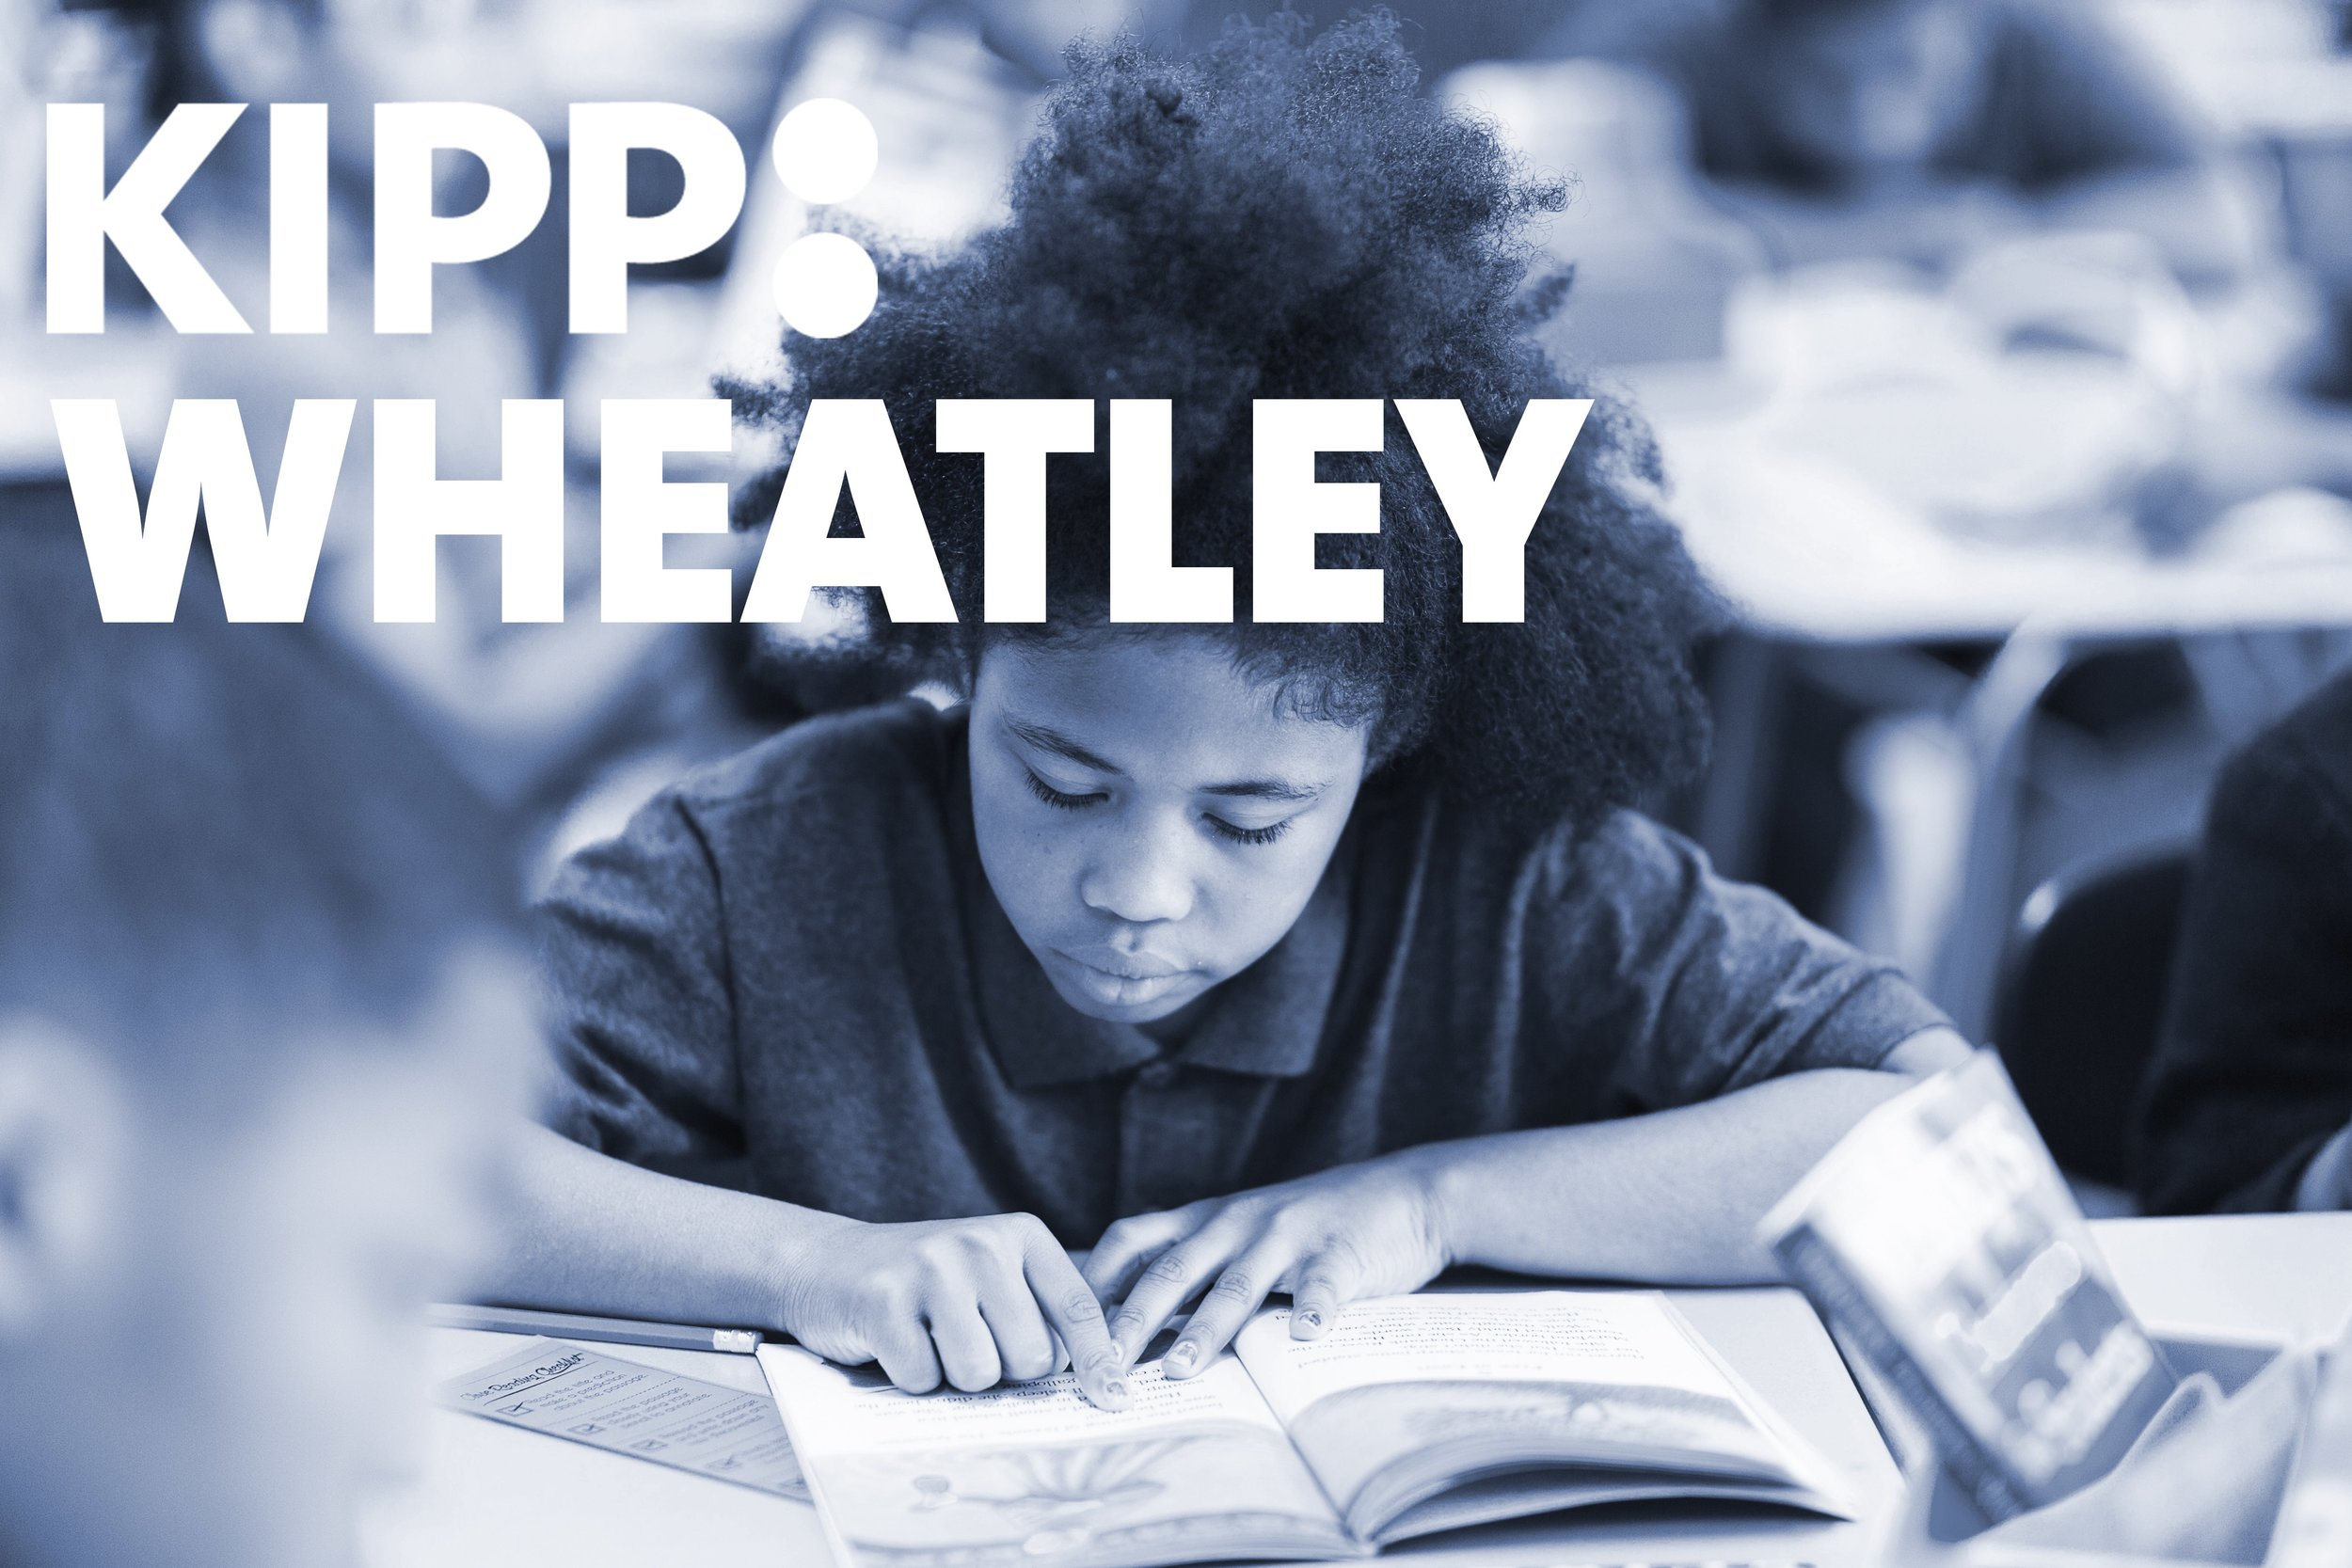 Literacy - English Language Arts is taught through the KIPP Wheatley curriculum in grades K-8. KIPP Wheatley, developed in-house alongside Great Minds, provides opportunities for close reading, writing, and speaking based on high-quality, diverse, and texts that are culturally relevant to students within a comprehensive, college-ready curriculum.